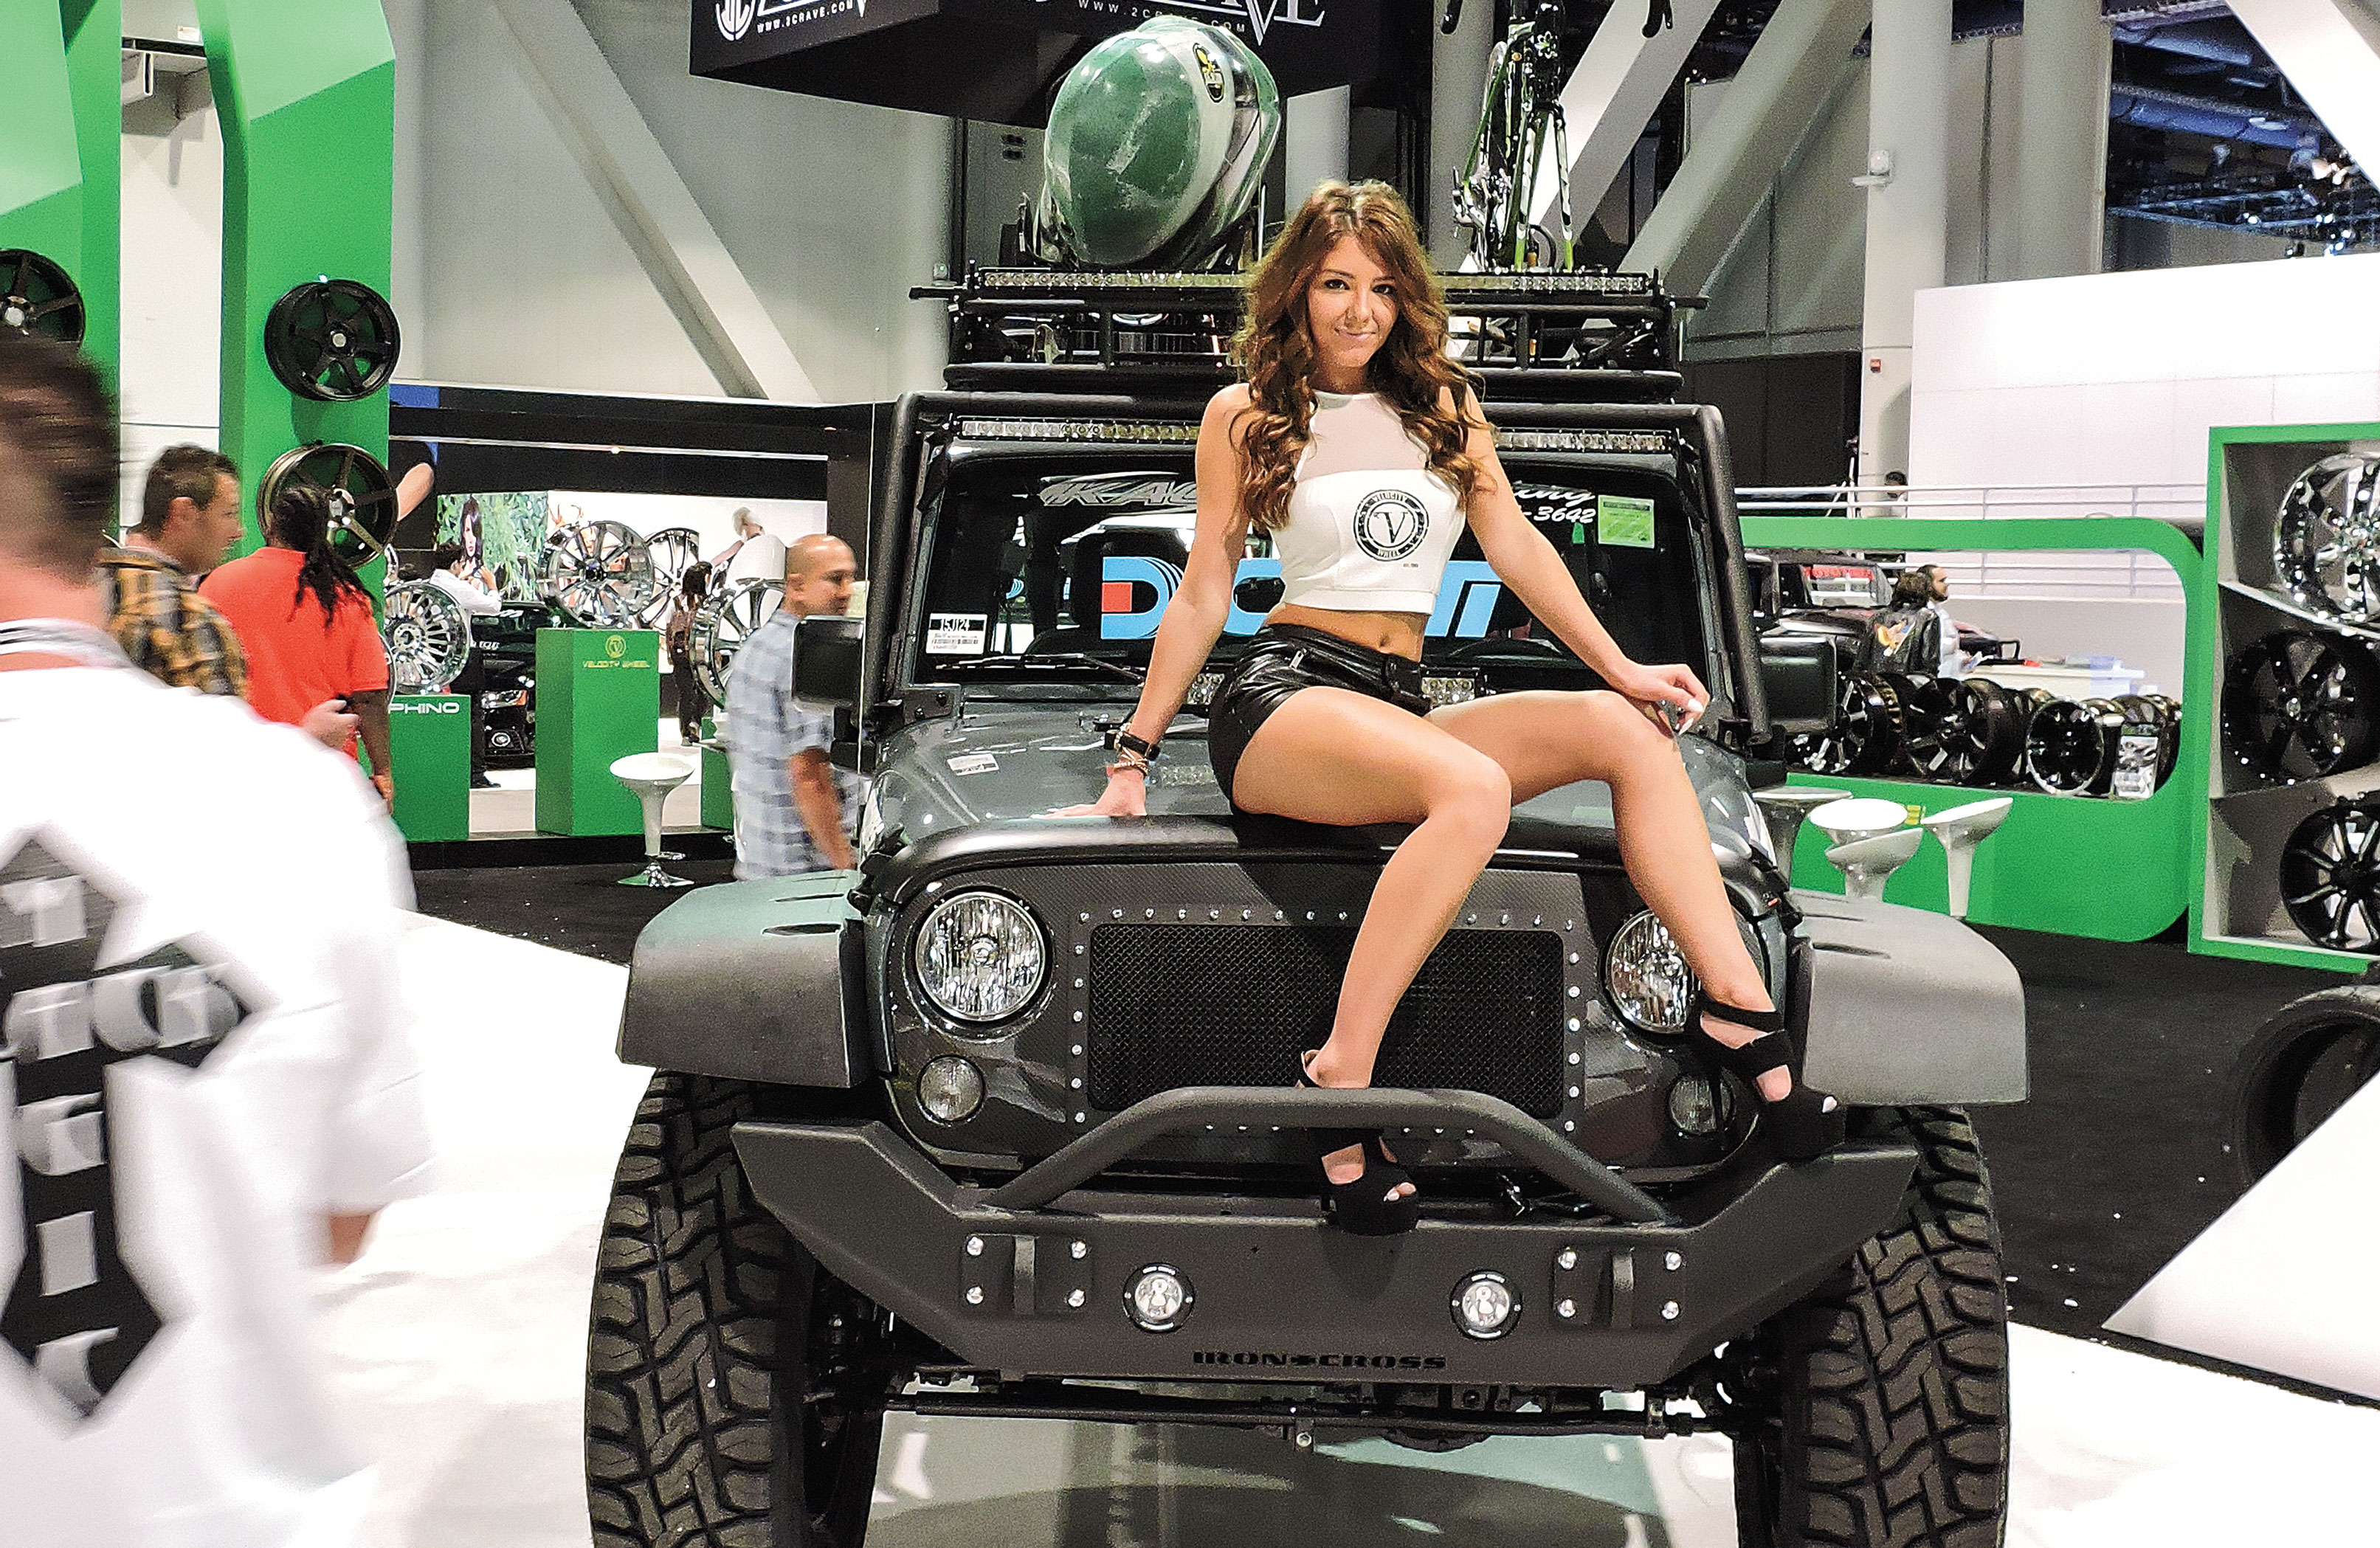 The Girls of SEMA 2014 - Stop the Cruelty!